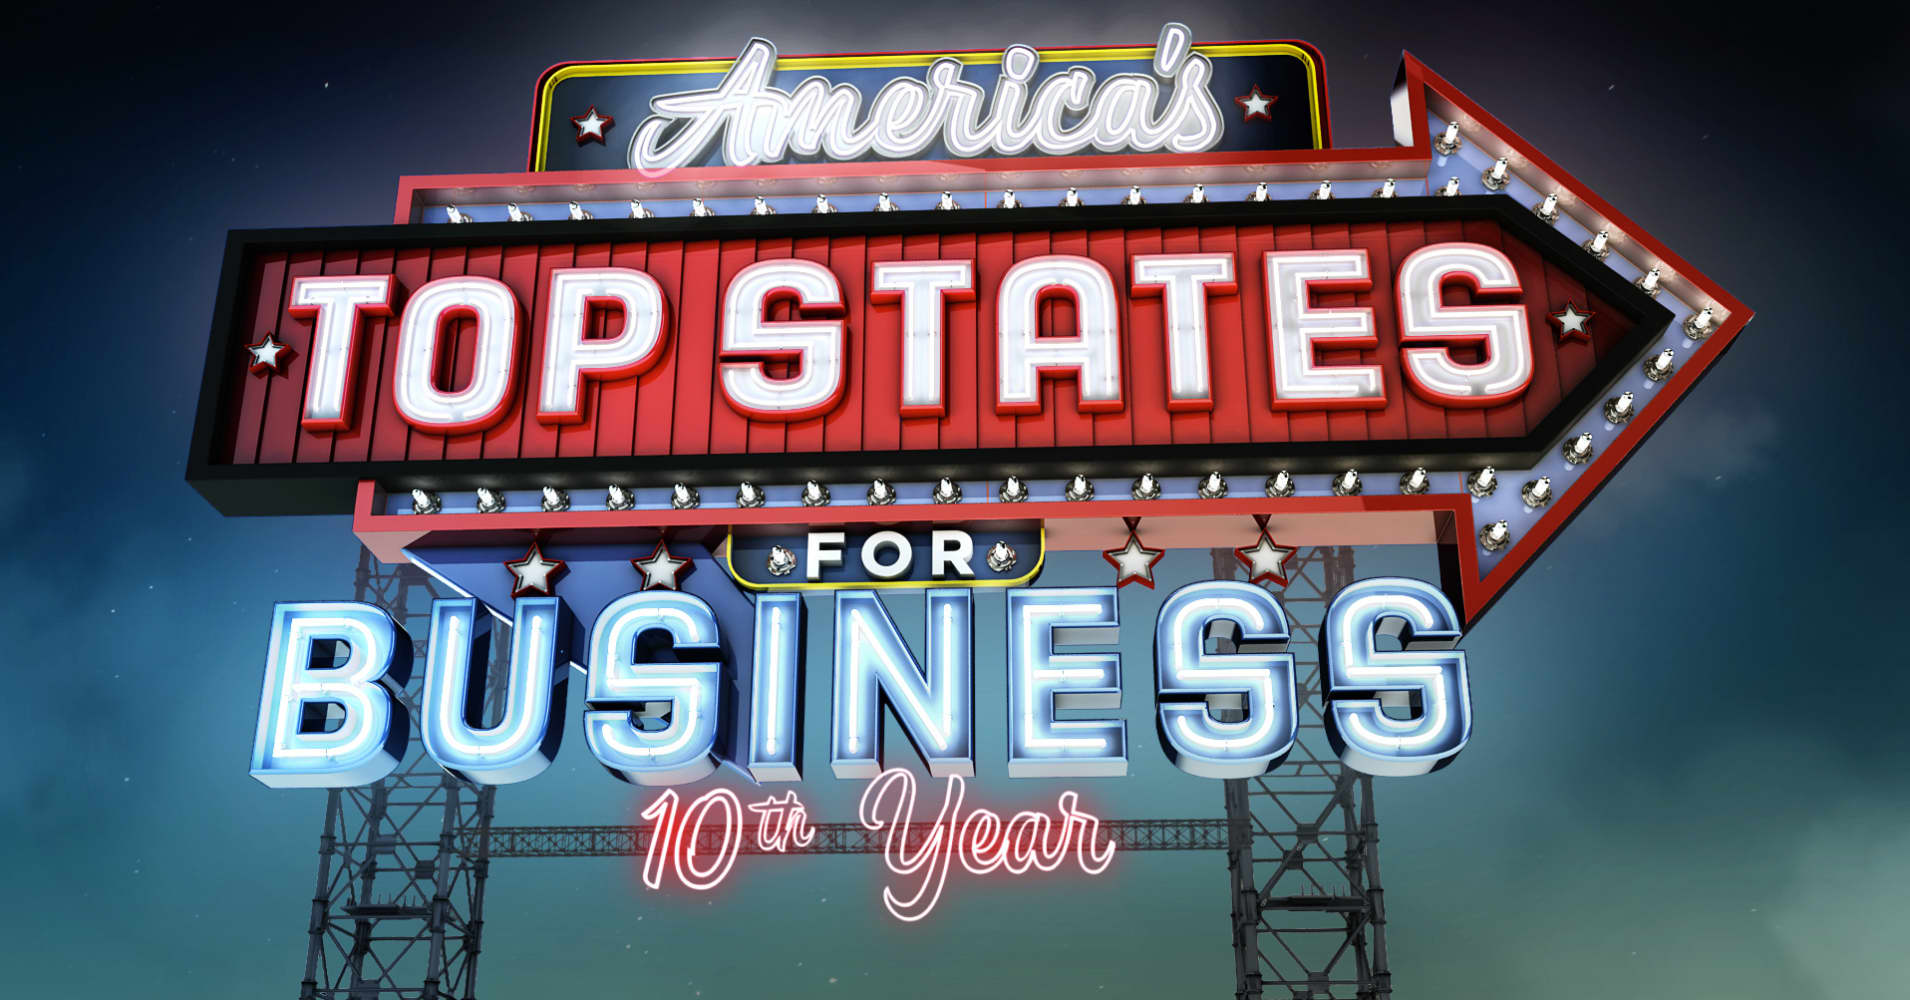 North Carolina jumps to No. 5 top state for business